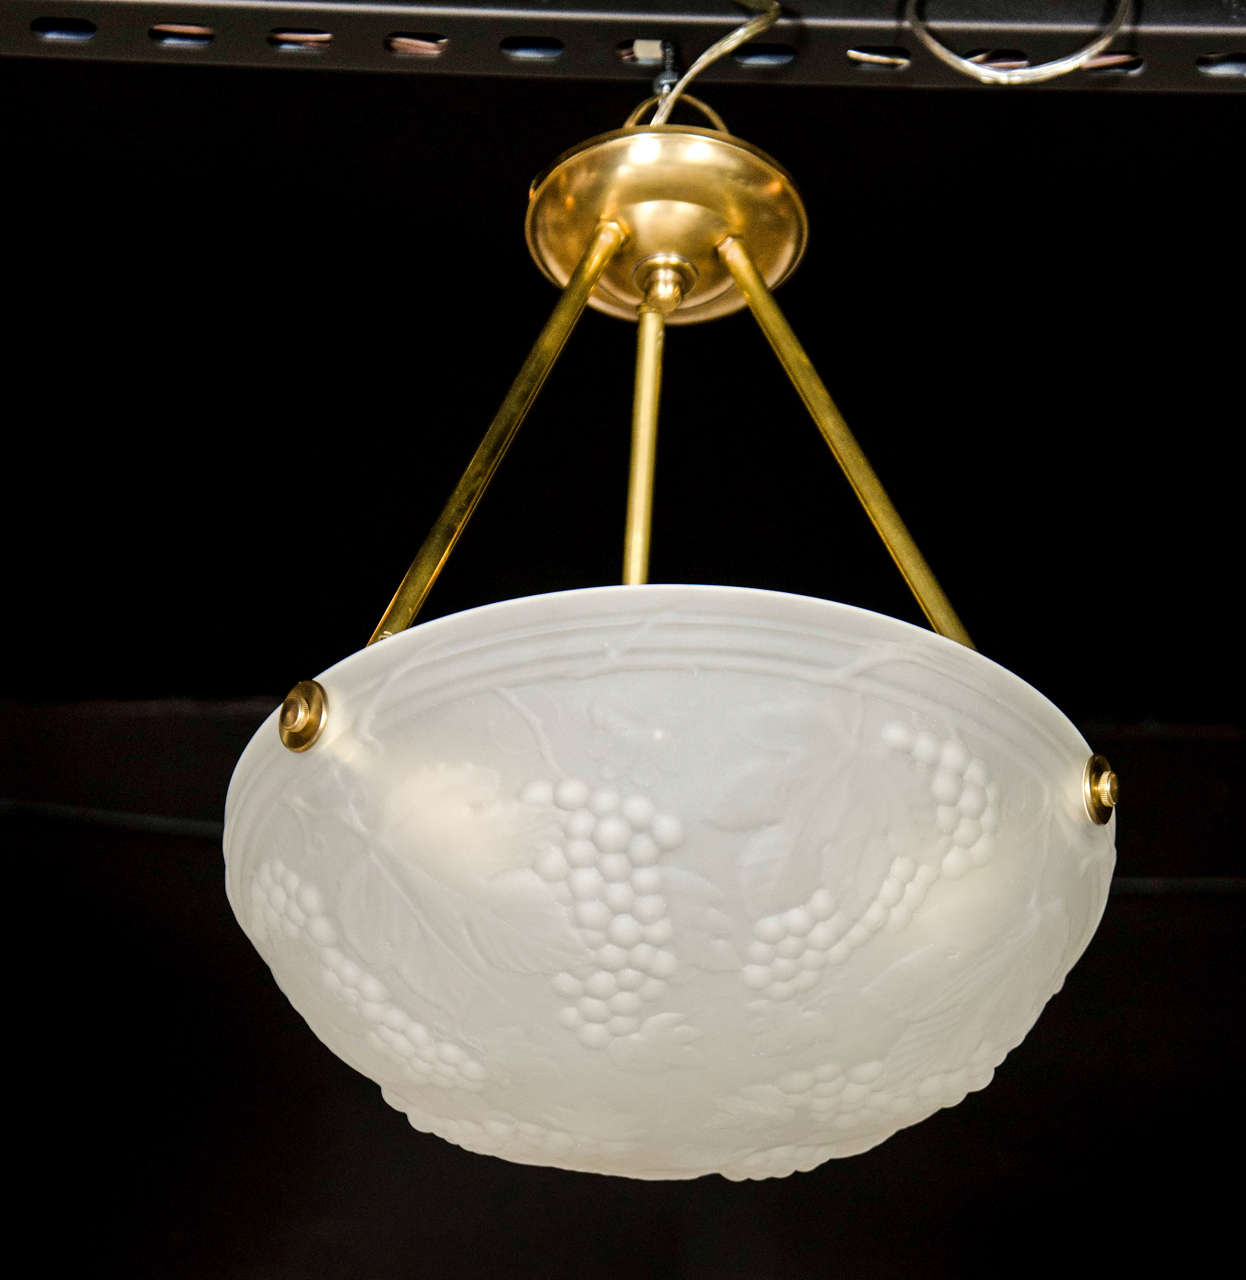 This elegant Art Deco flush mount chandelier features a frosted glass bowl shade with stylized grape and vine design with brass fittings. It is in excellent condition and has been newly rewired to American standards. The height can be adjusted to